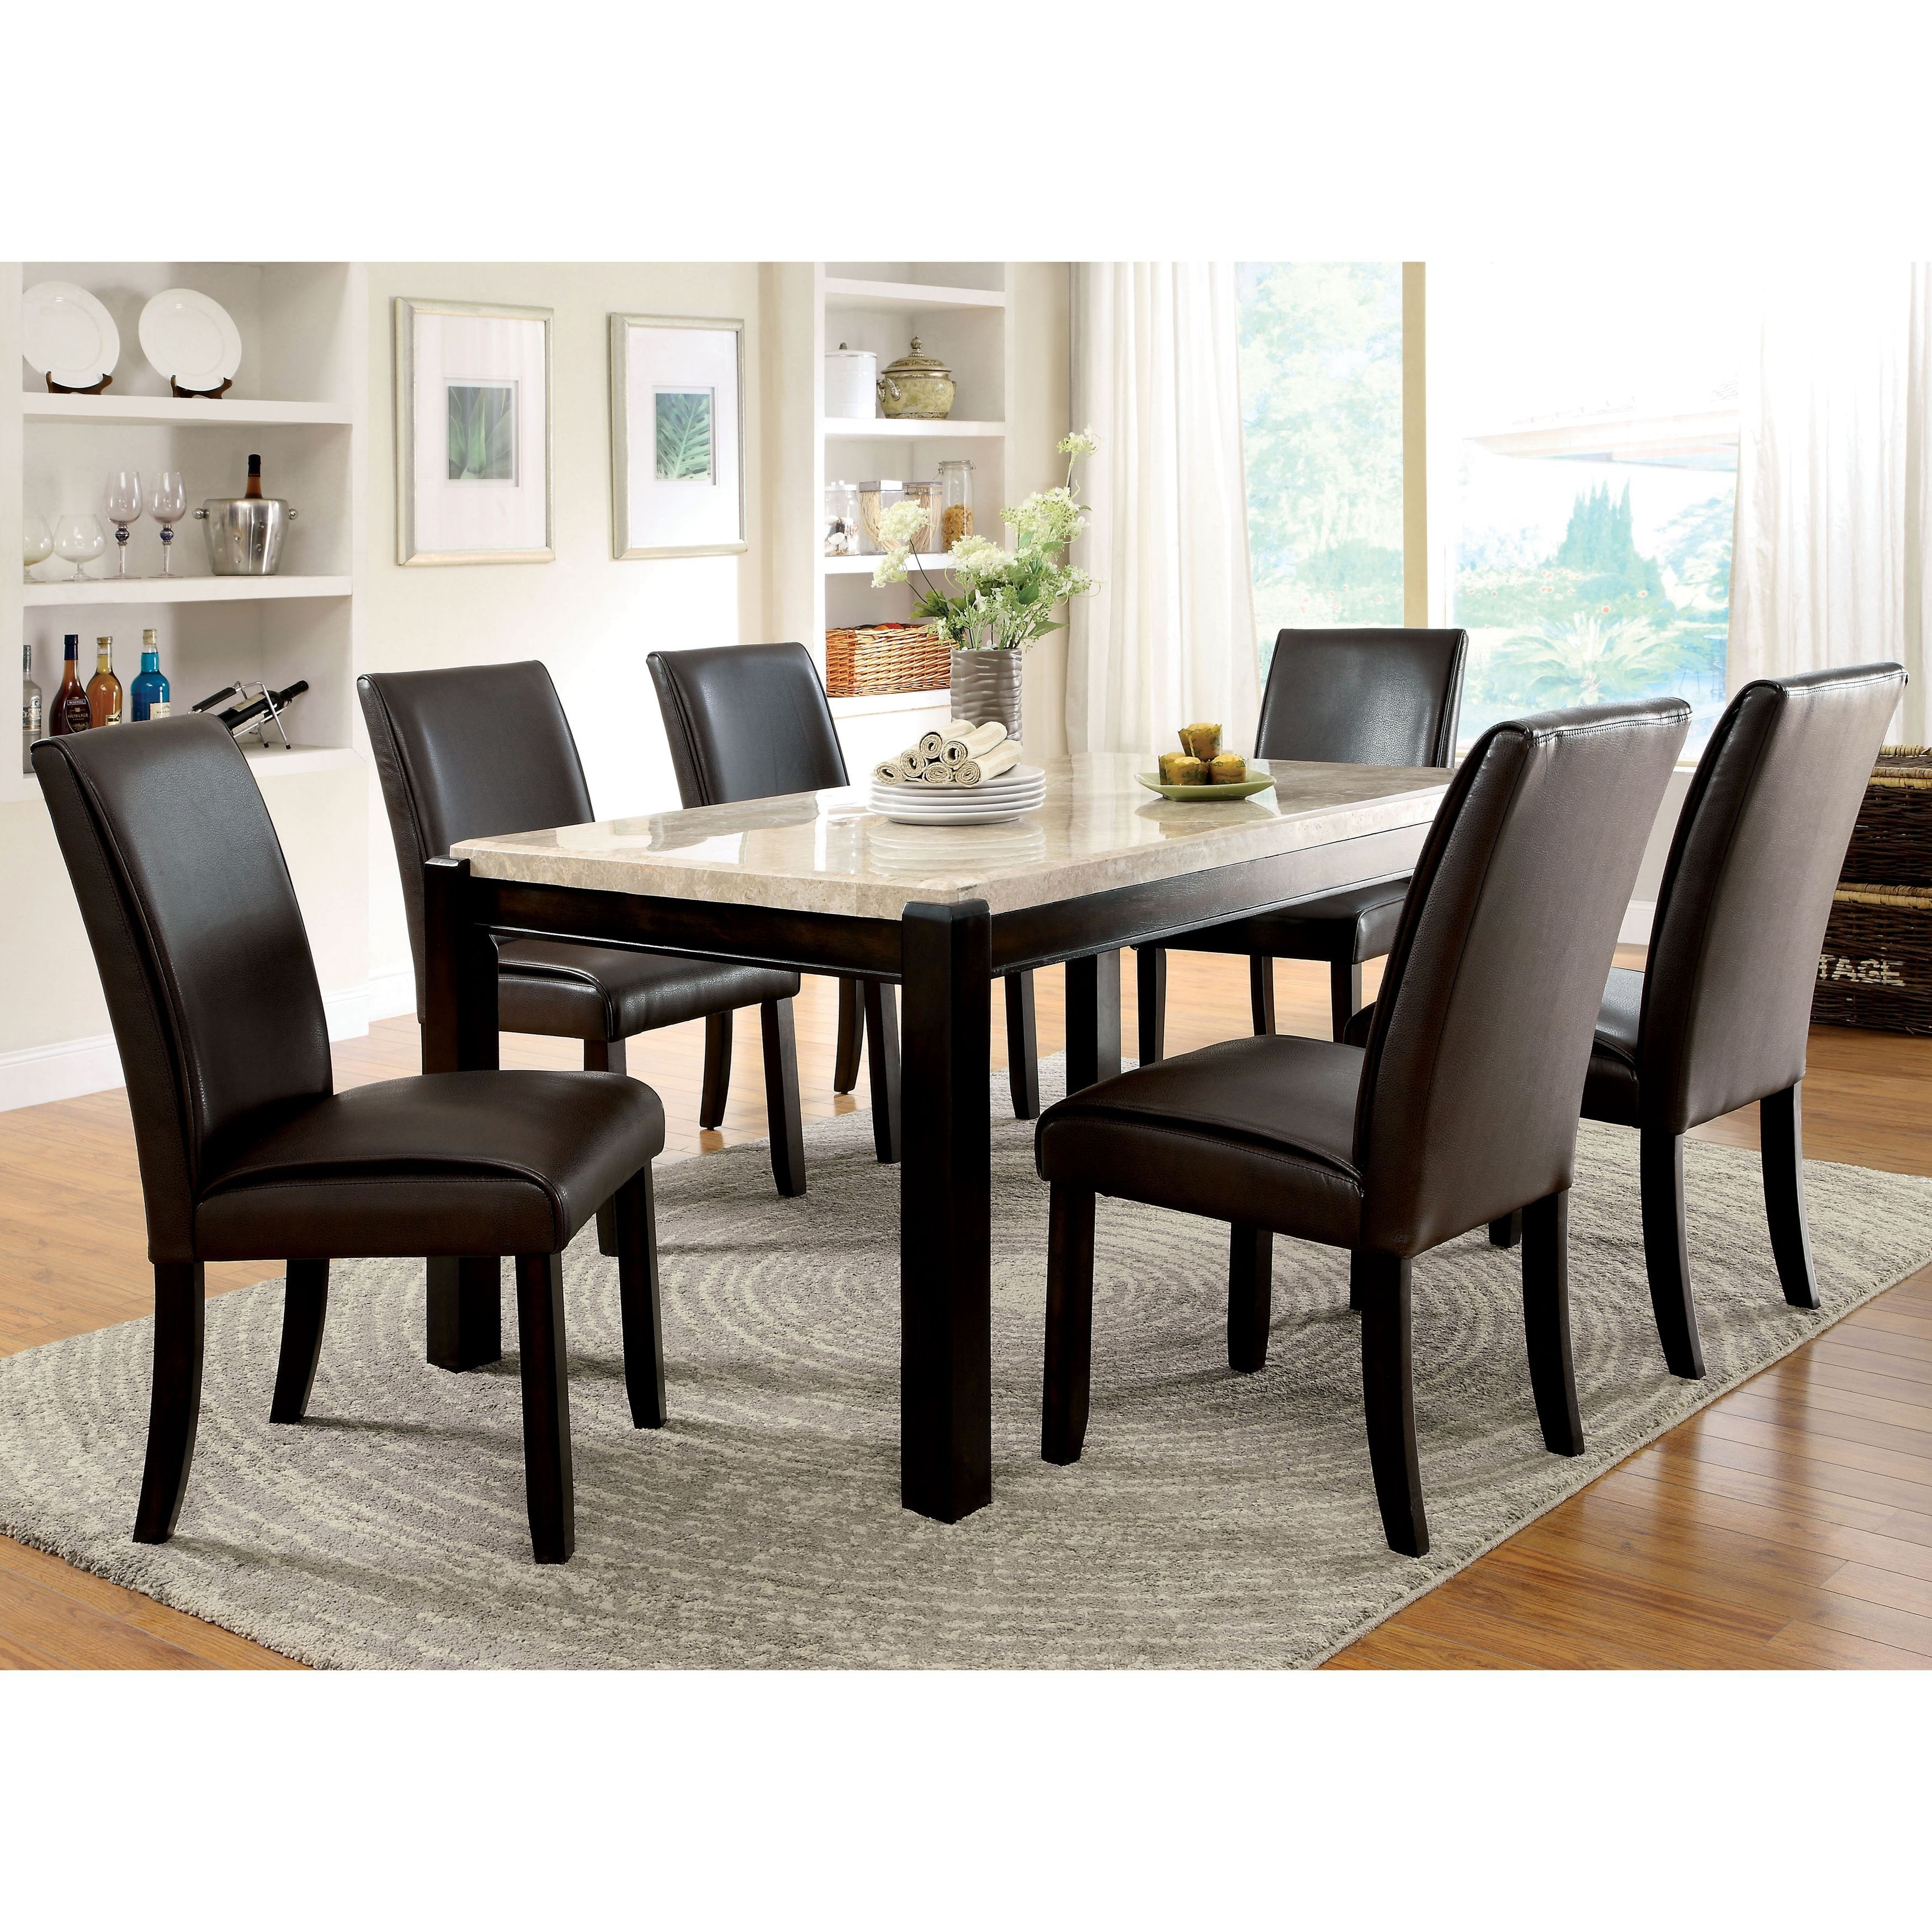 Furniture Of America Joreth 7 Piece Dark Walnut (Brown) Dining Set With Regard To Most Recently Released Palazzo 6 Piece Rectangle Dining Sets With Joss Side Chairs (Image 5 of 20)